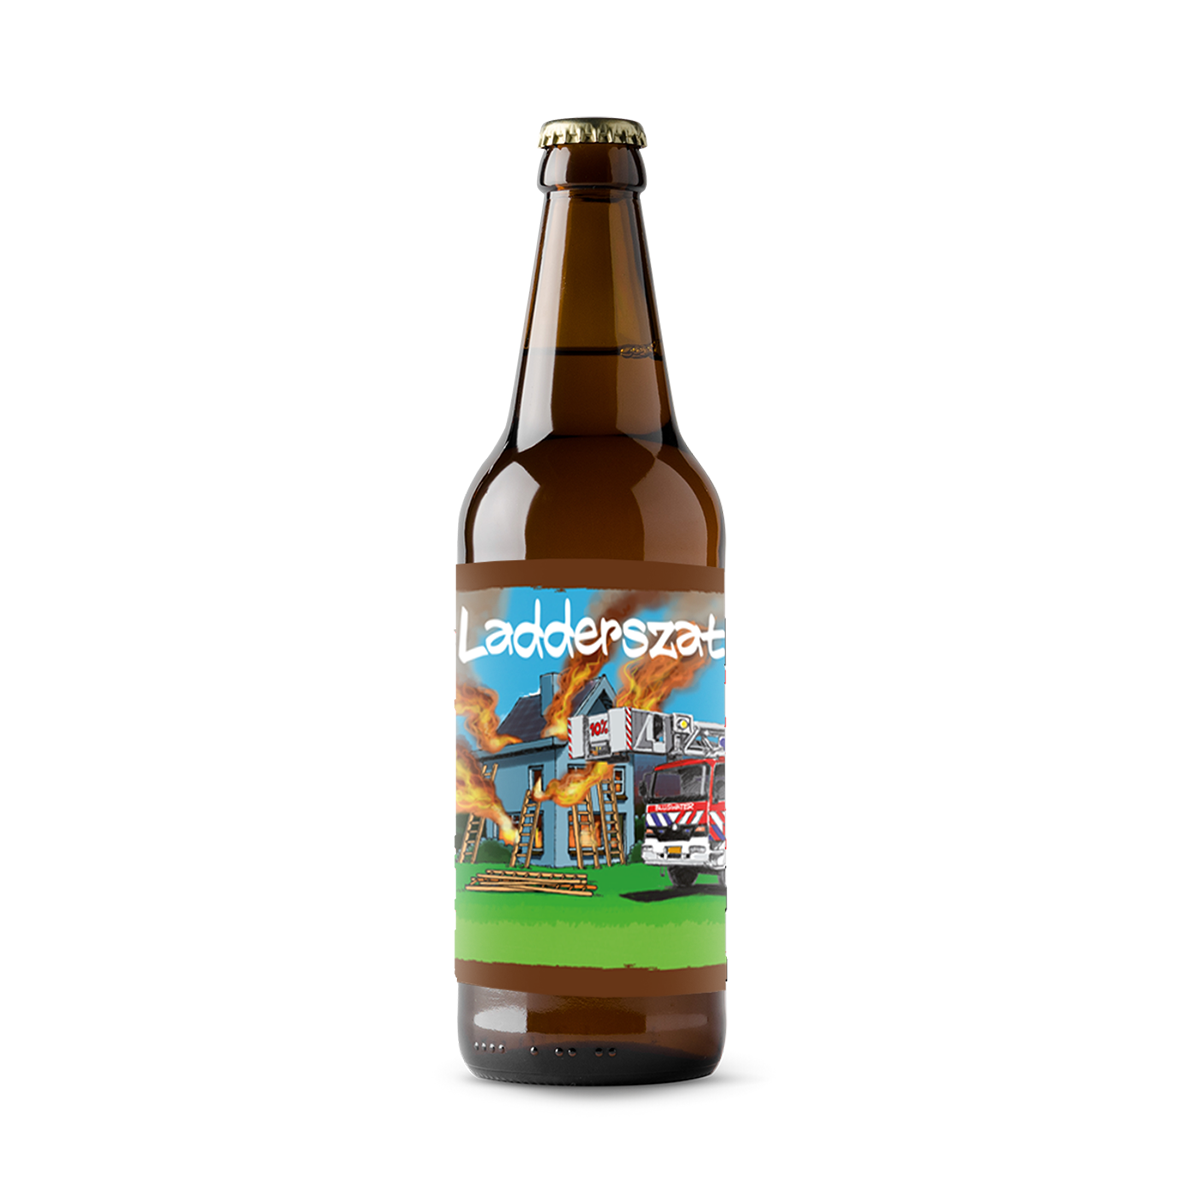 https://www.brouwerijbluswater.nl/wp-content/uploads/2017/05/product1.png